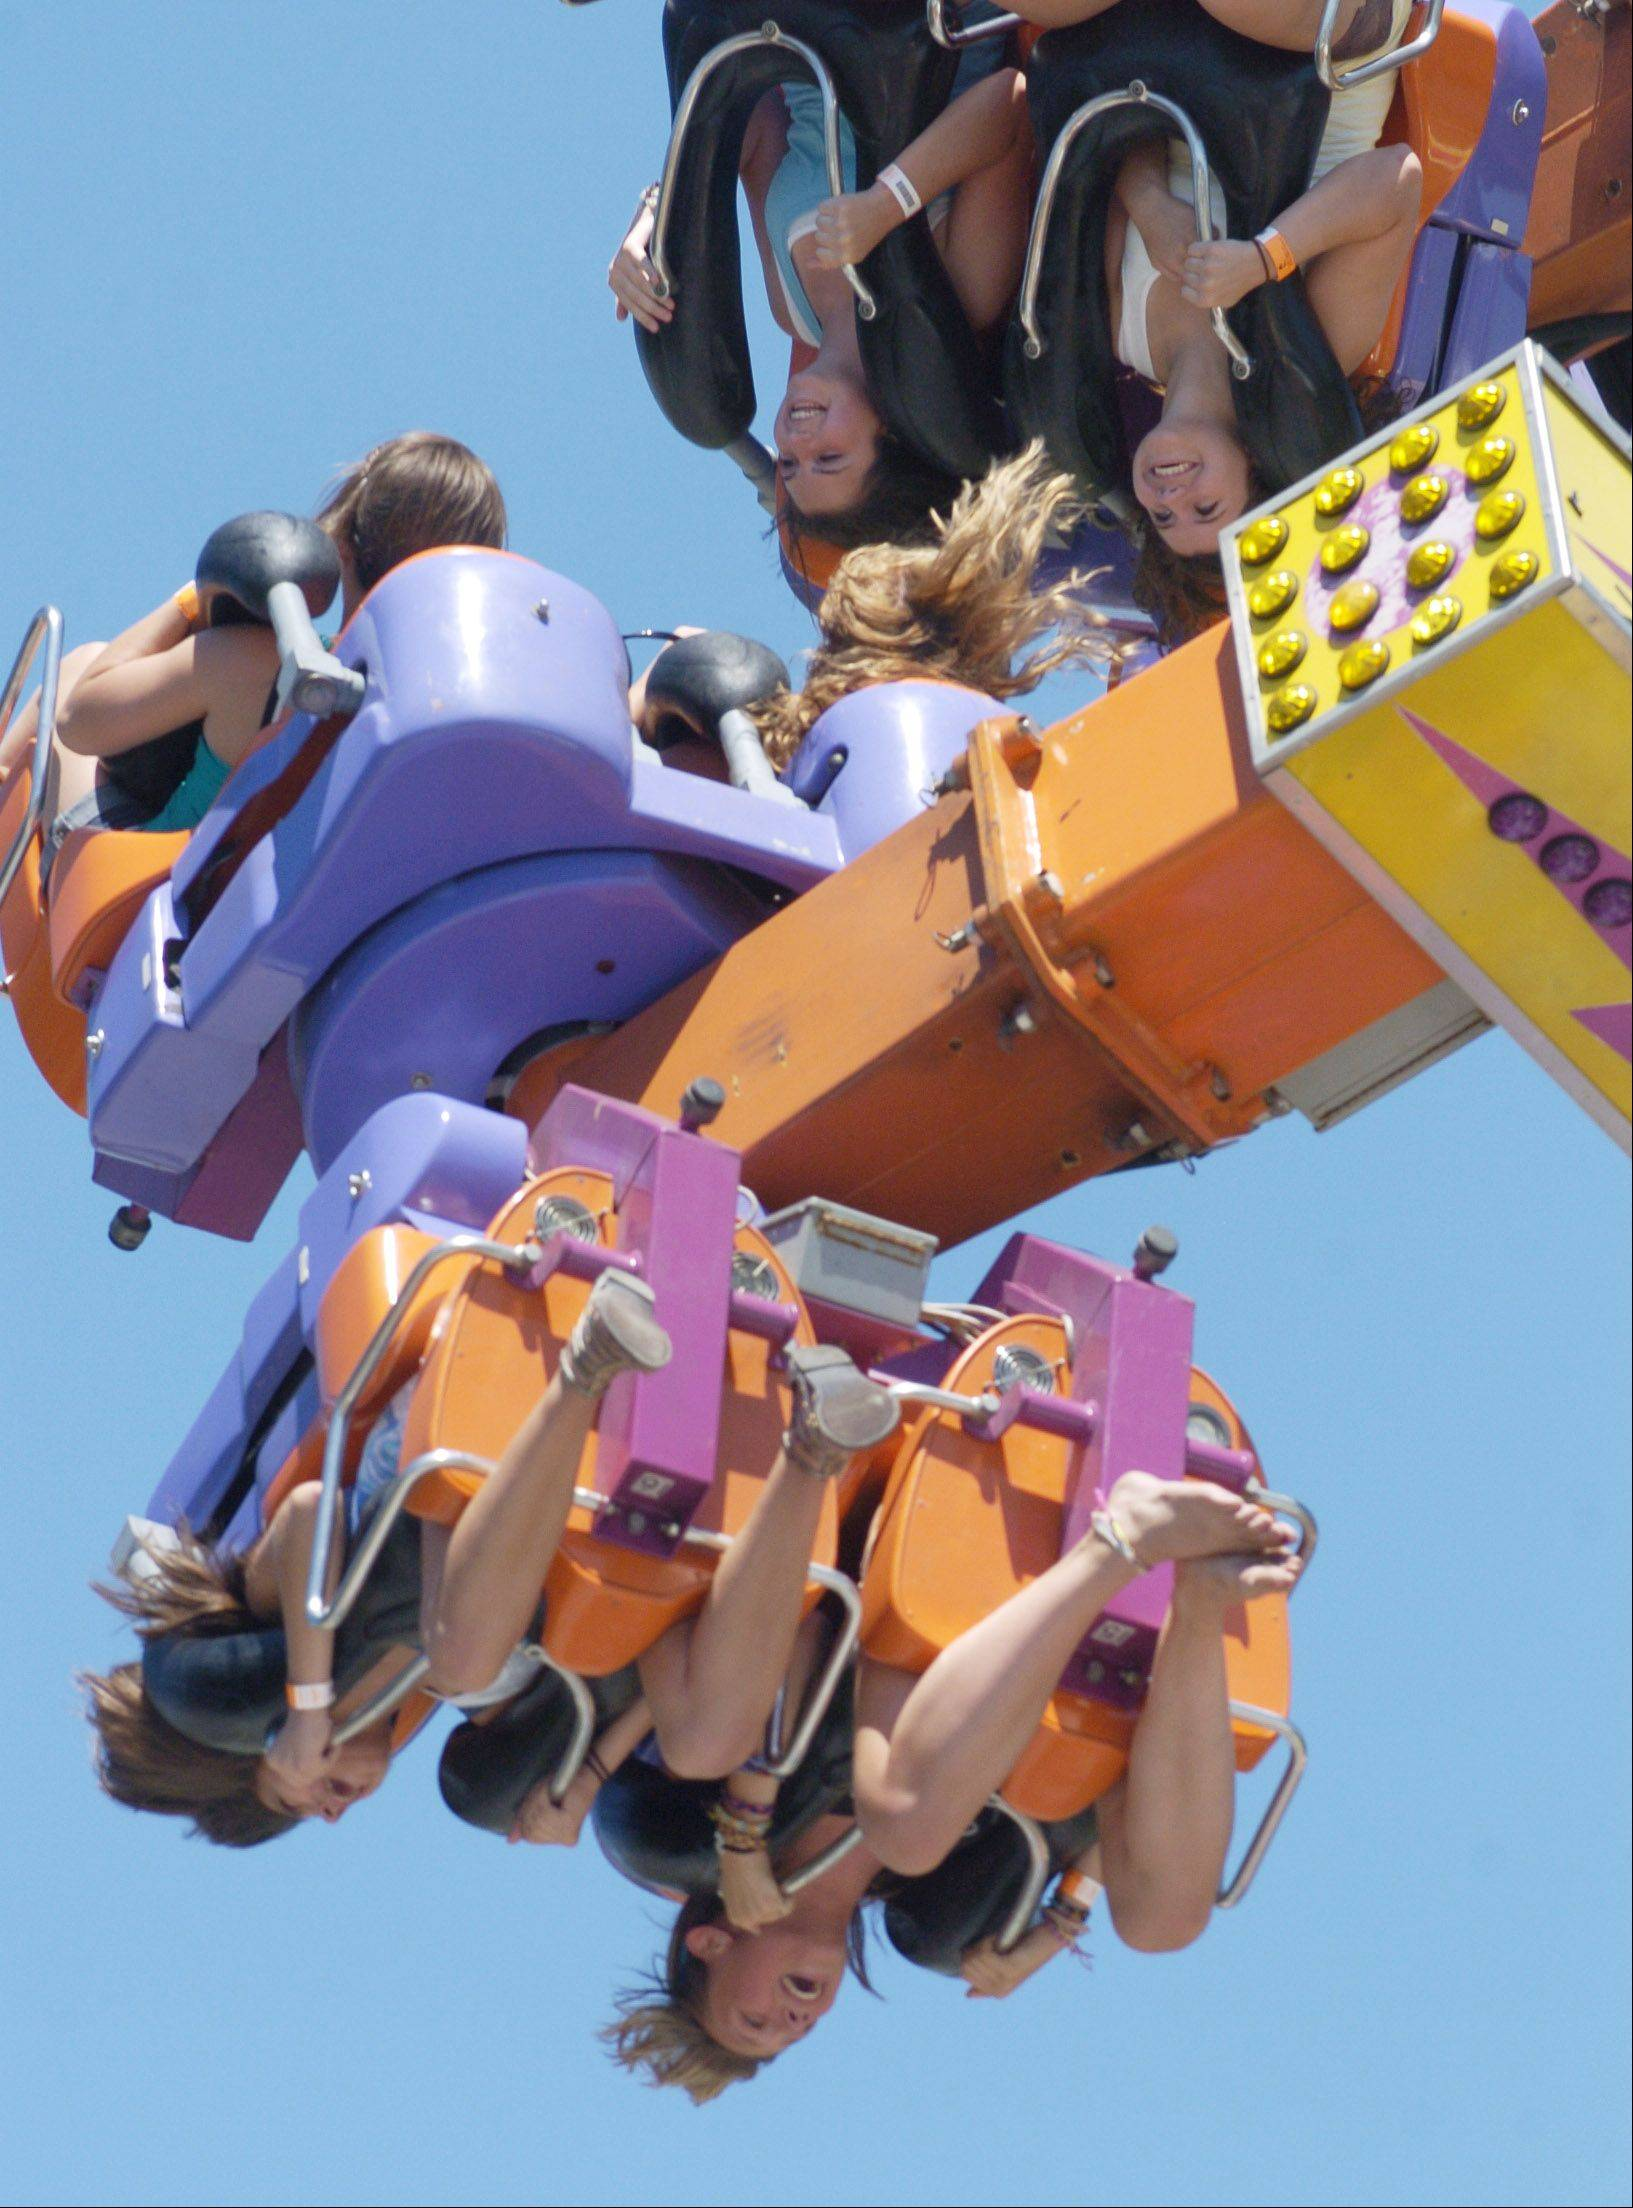 Teens take a ride upside down during last year's Frontier Days in Arlington Heights.